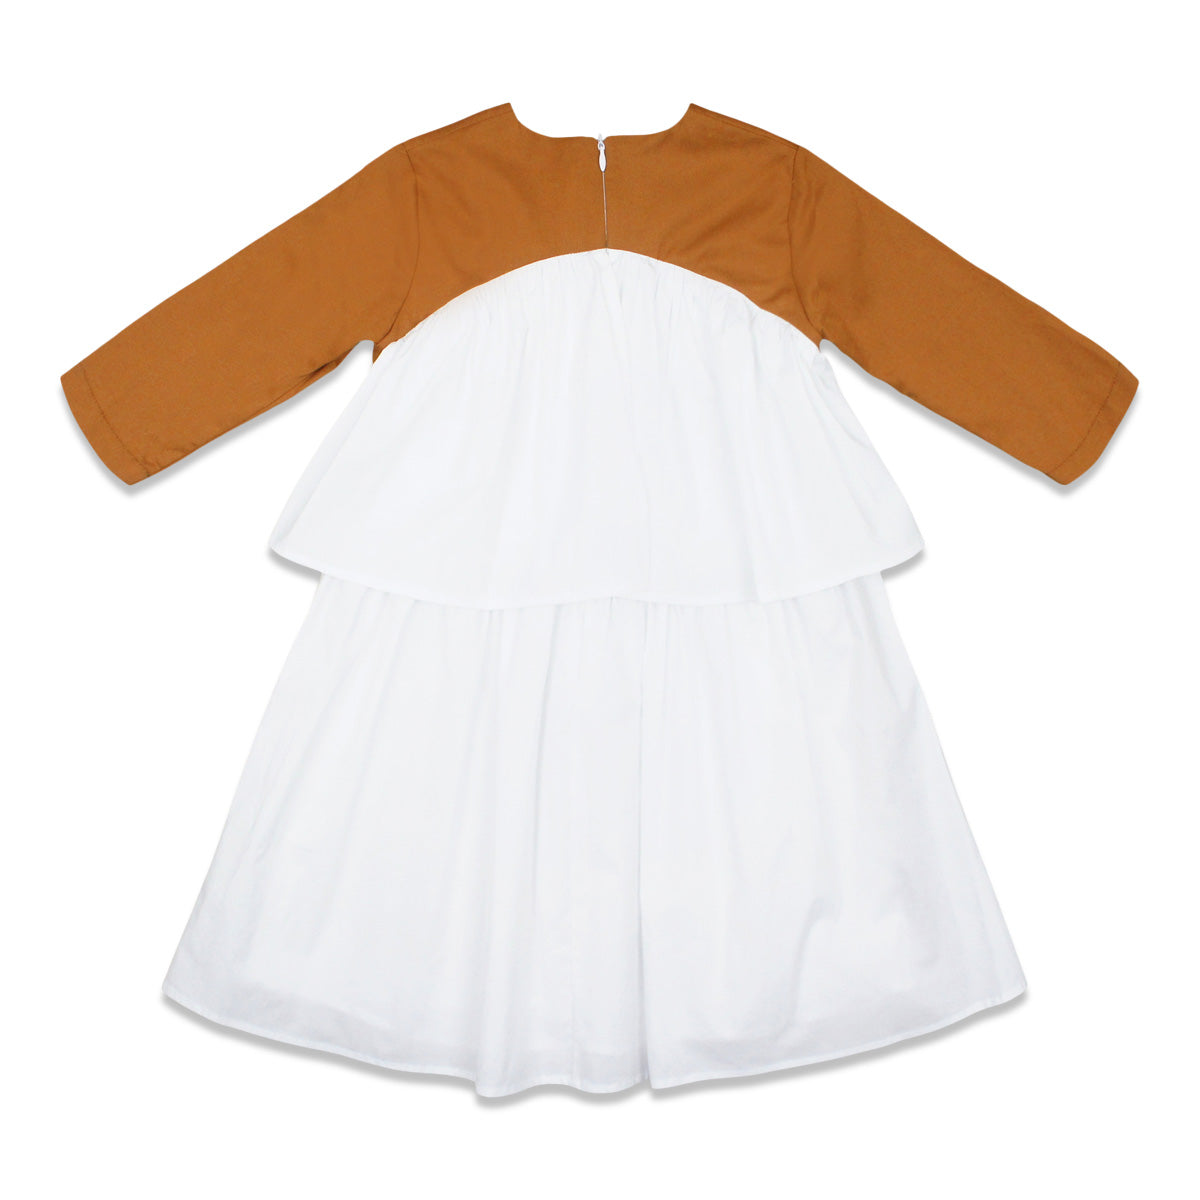 Alitsa Cinnamon Ruffle Dress